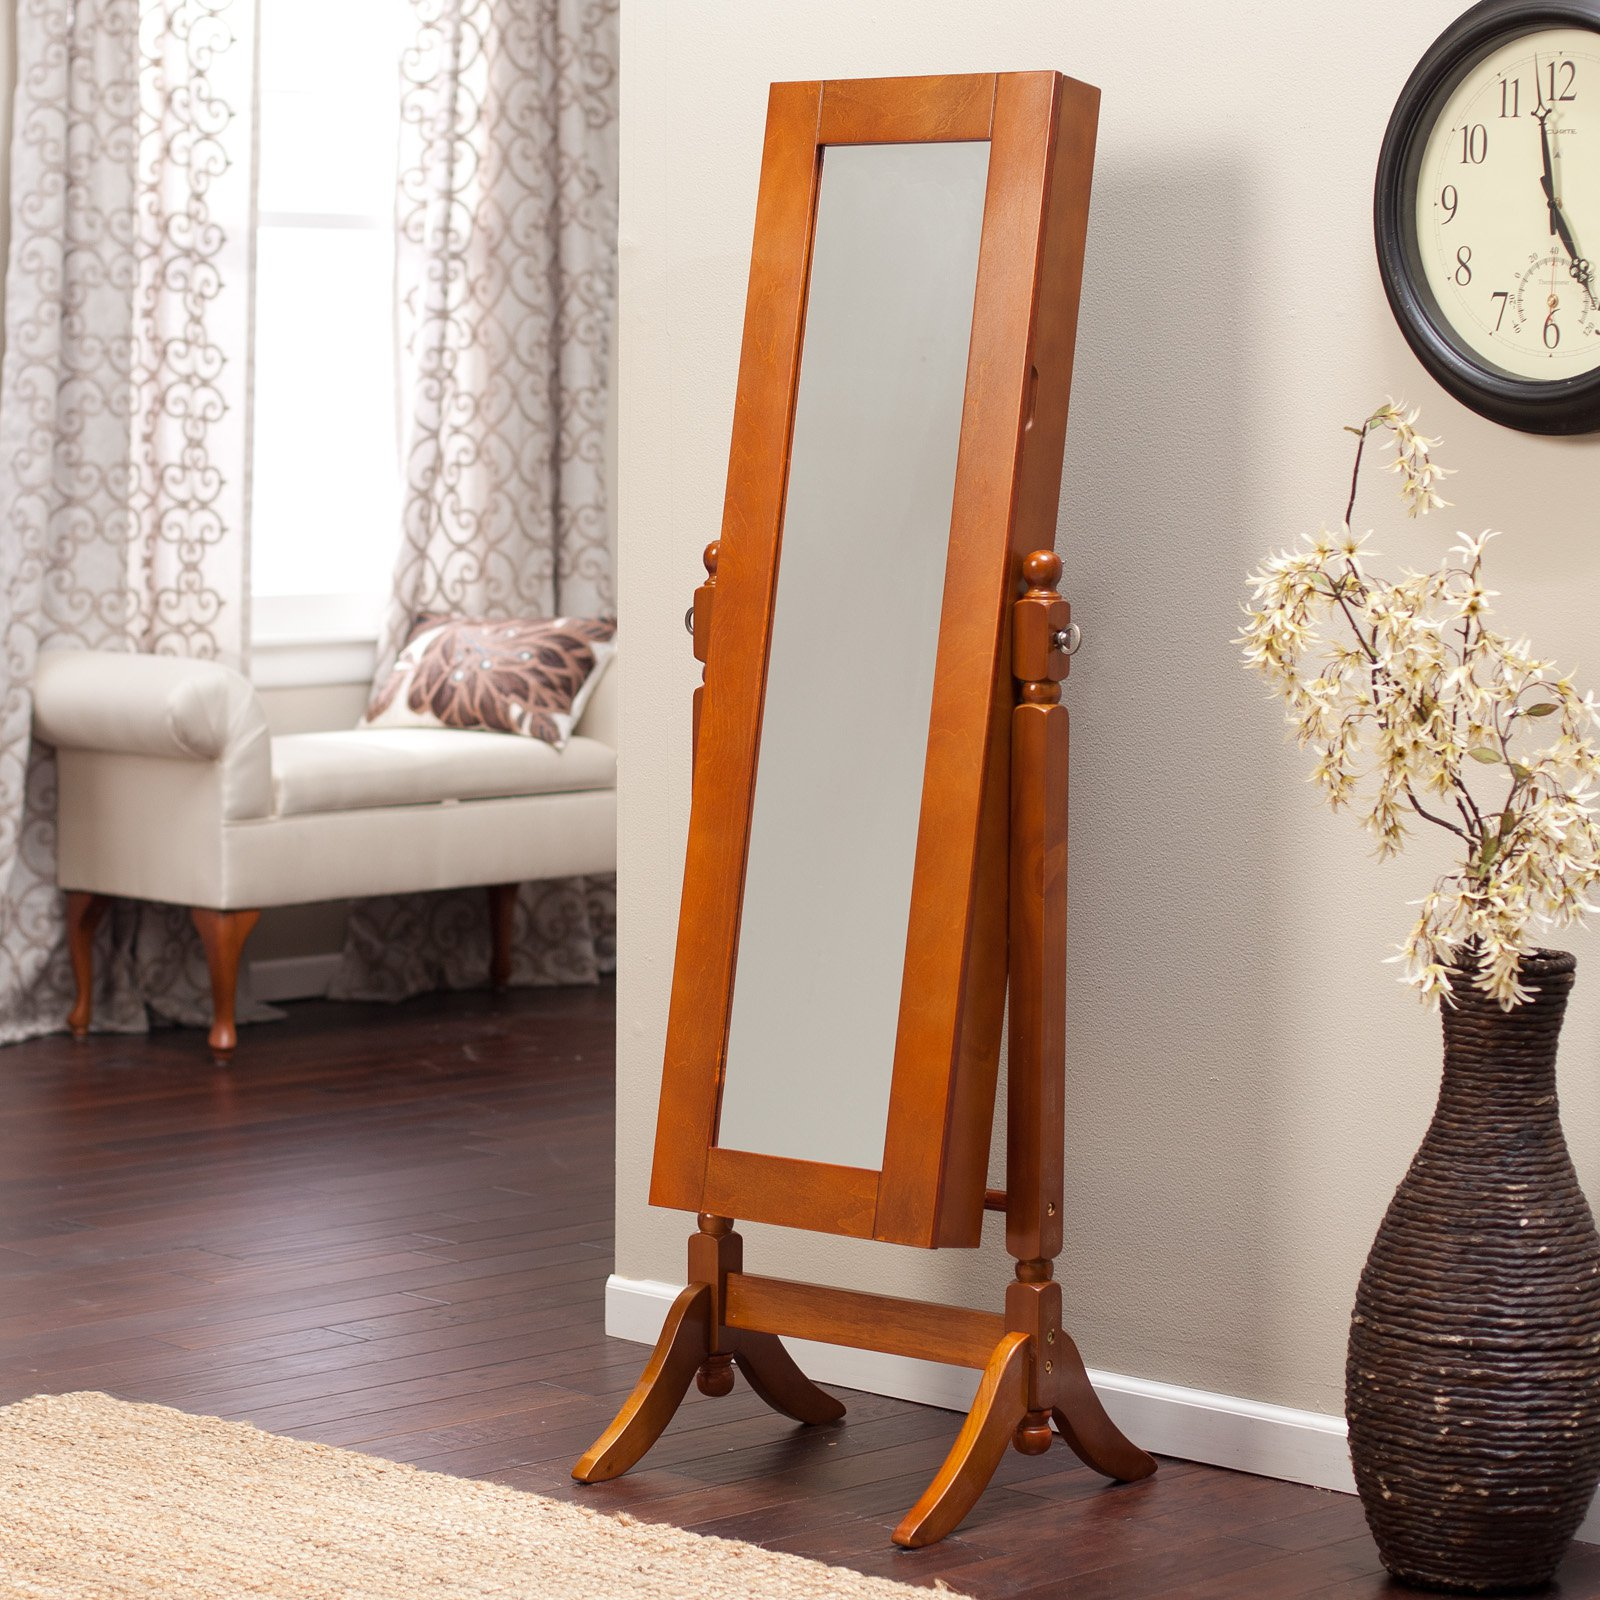 Heritage Jewelry Armoire Cheval Mirror - Oak